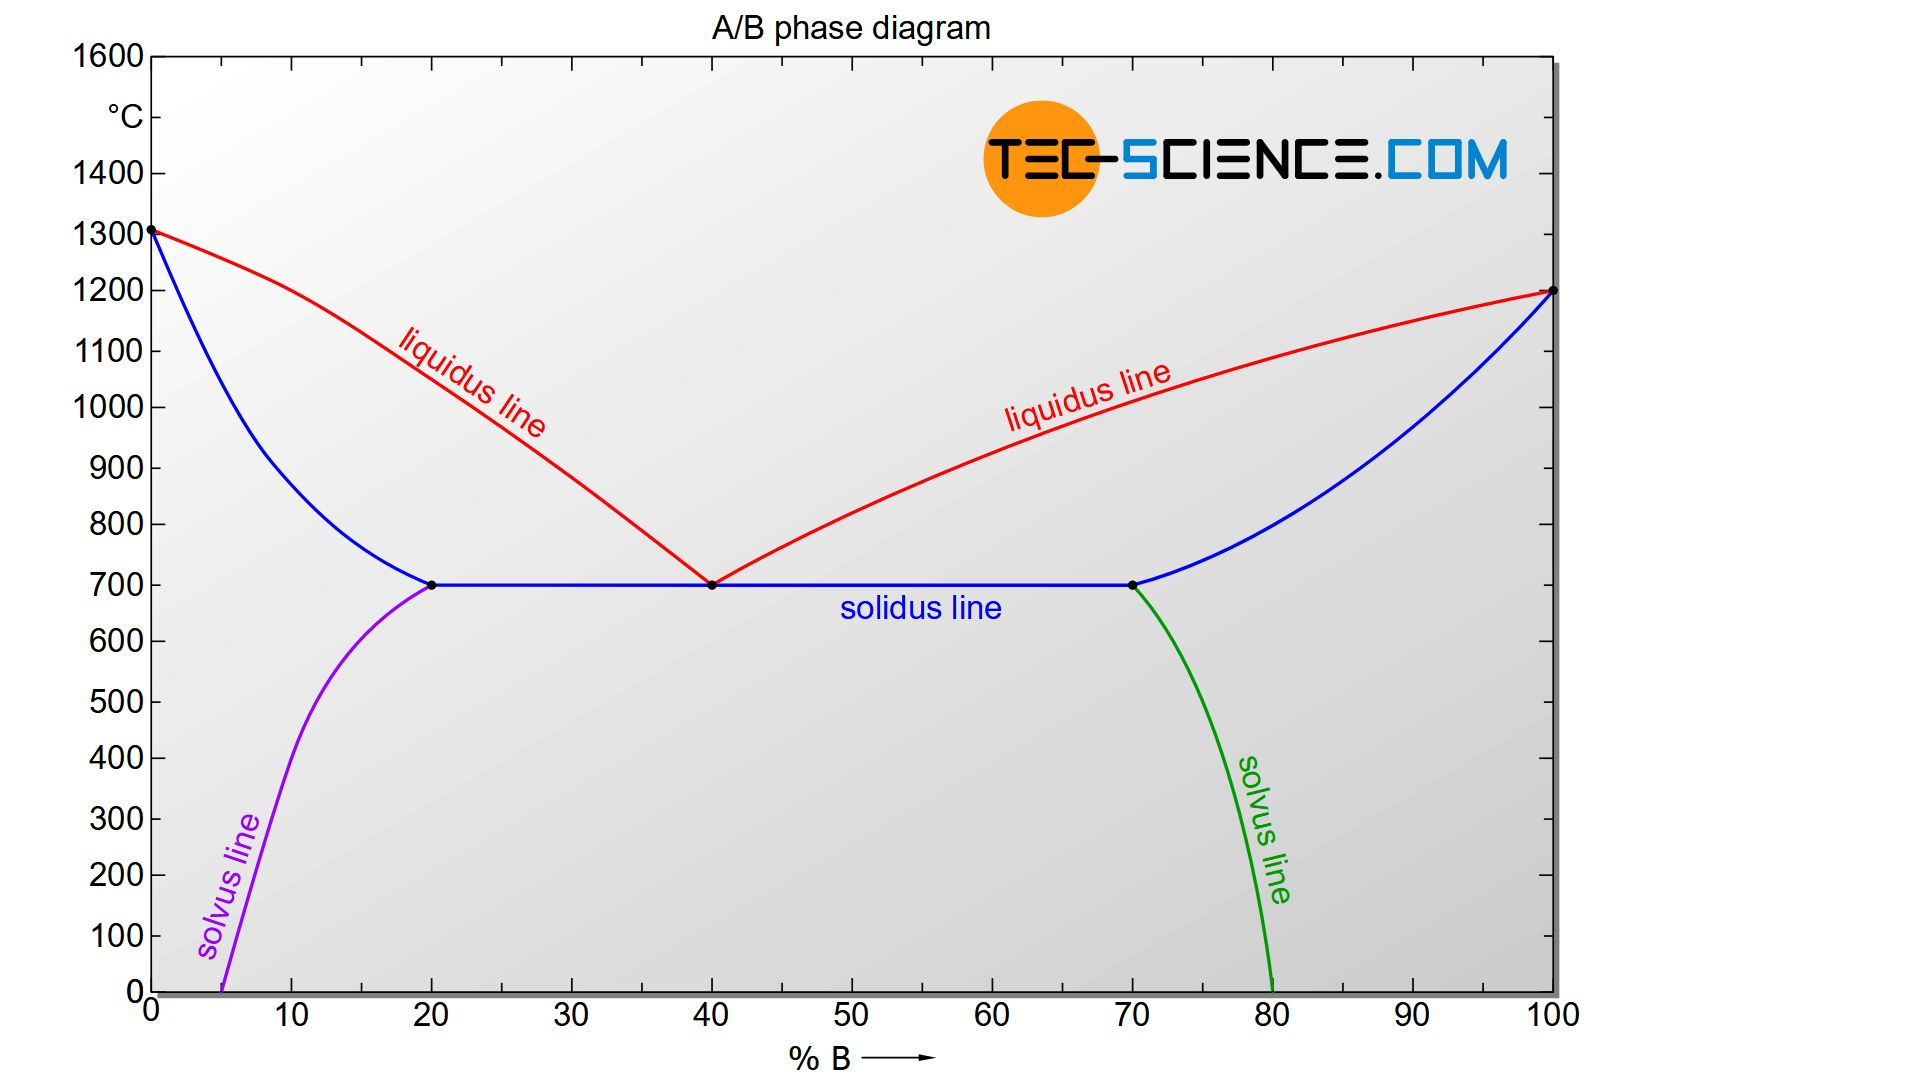 Phase diagram of an alloy system with limited solubility of components